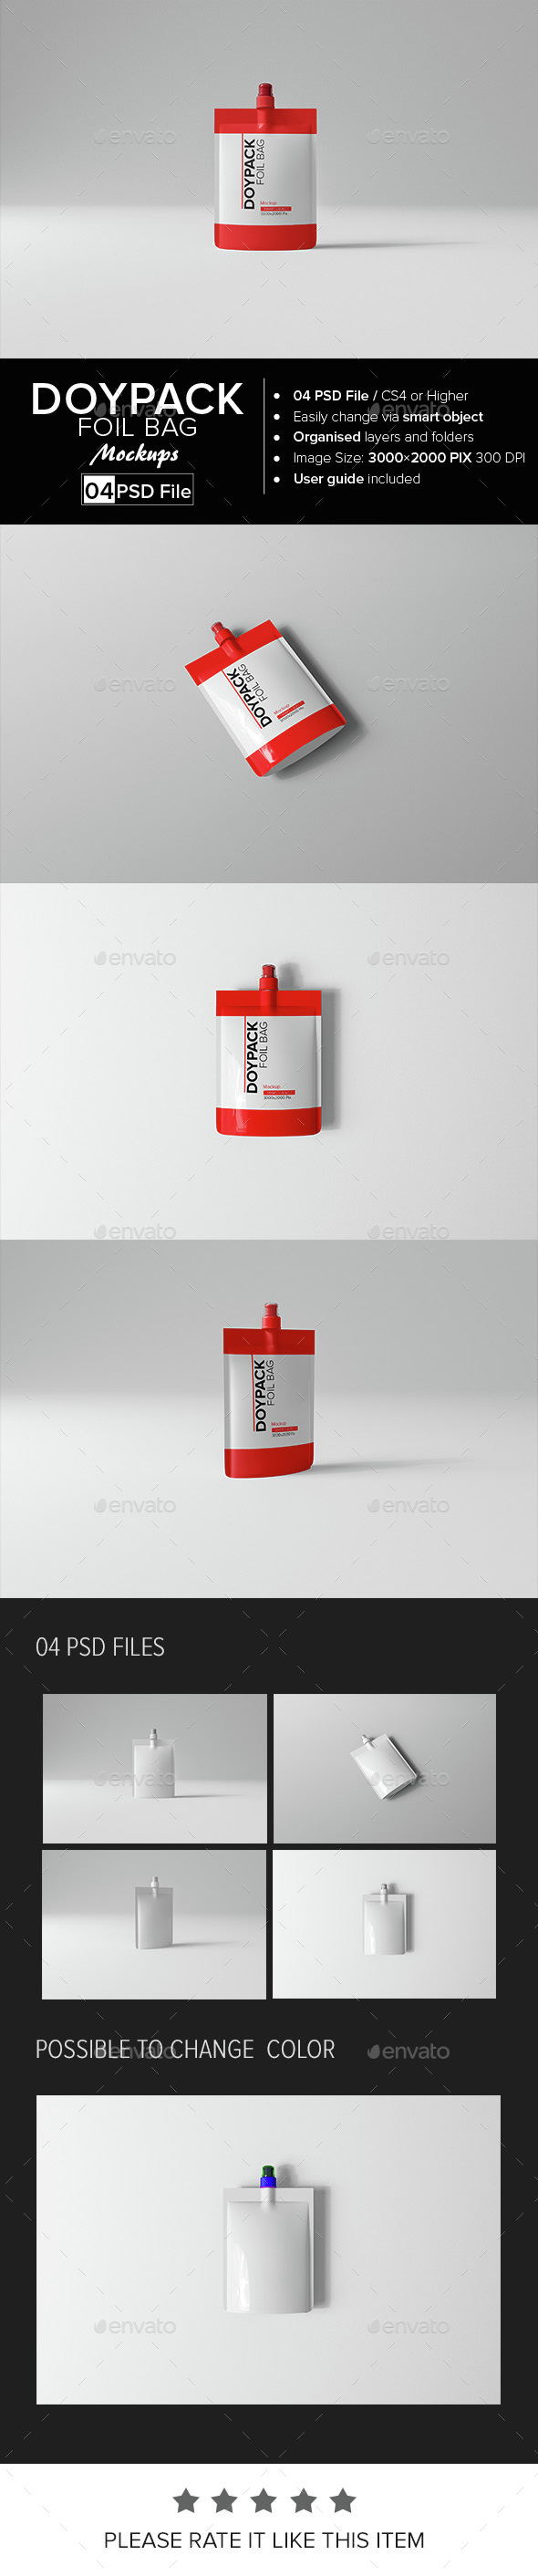 Doypack Foil Bag Mock-up - Food and Drink Packaging